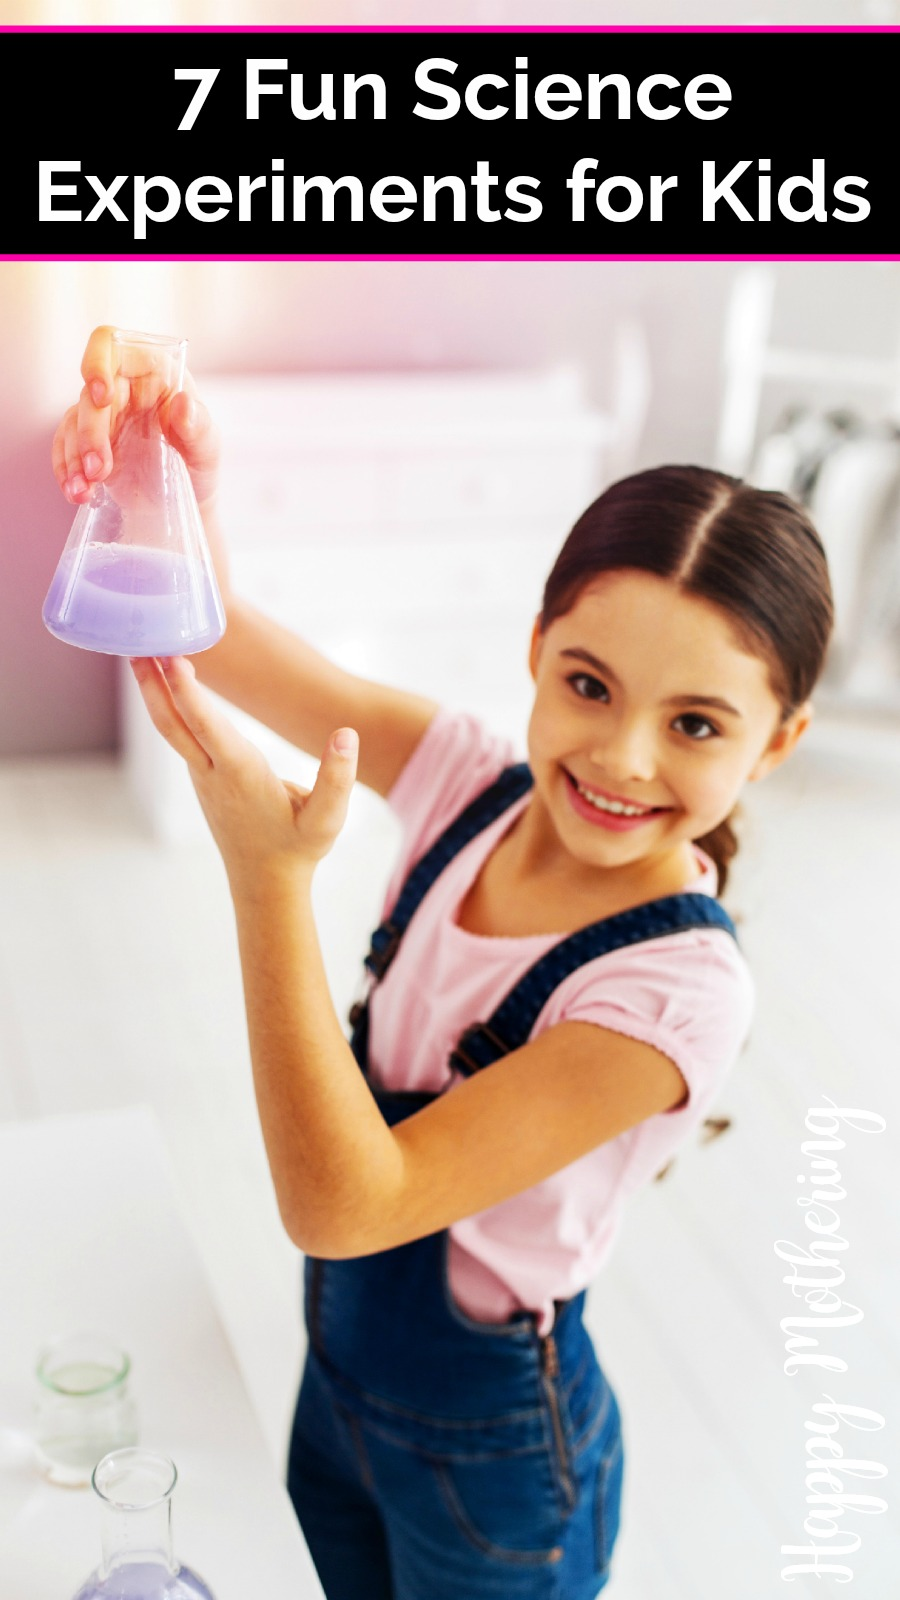 Science experiments are a wonderful way to get kids interested in science, so we put together a list of 7 fun science experiments for kids. They work at home or in the classroom!